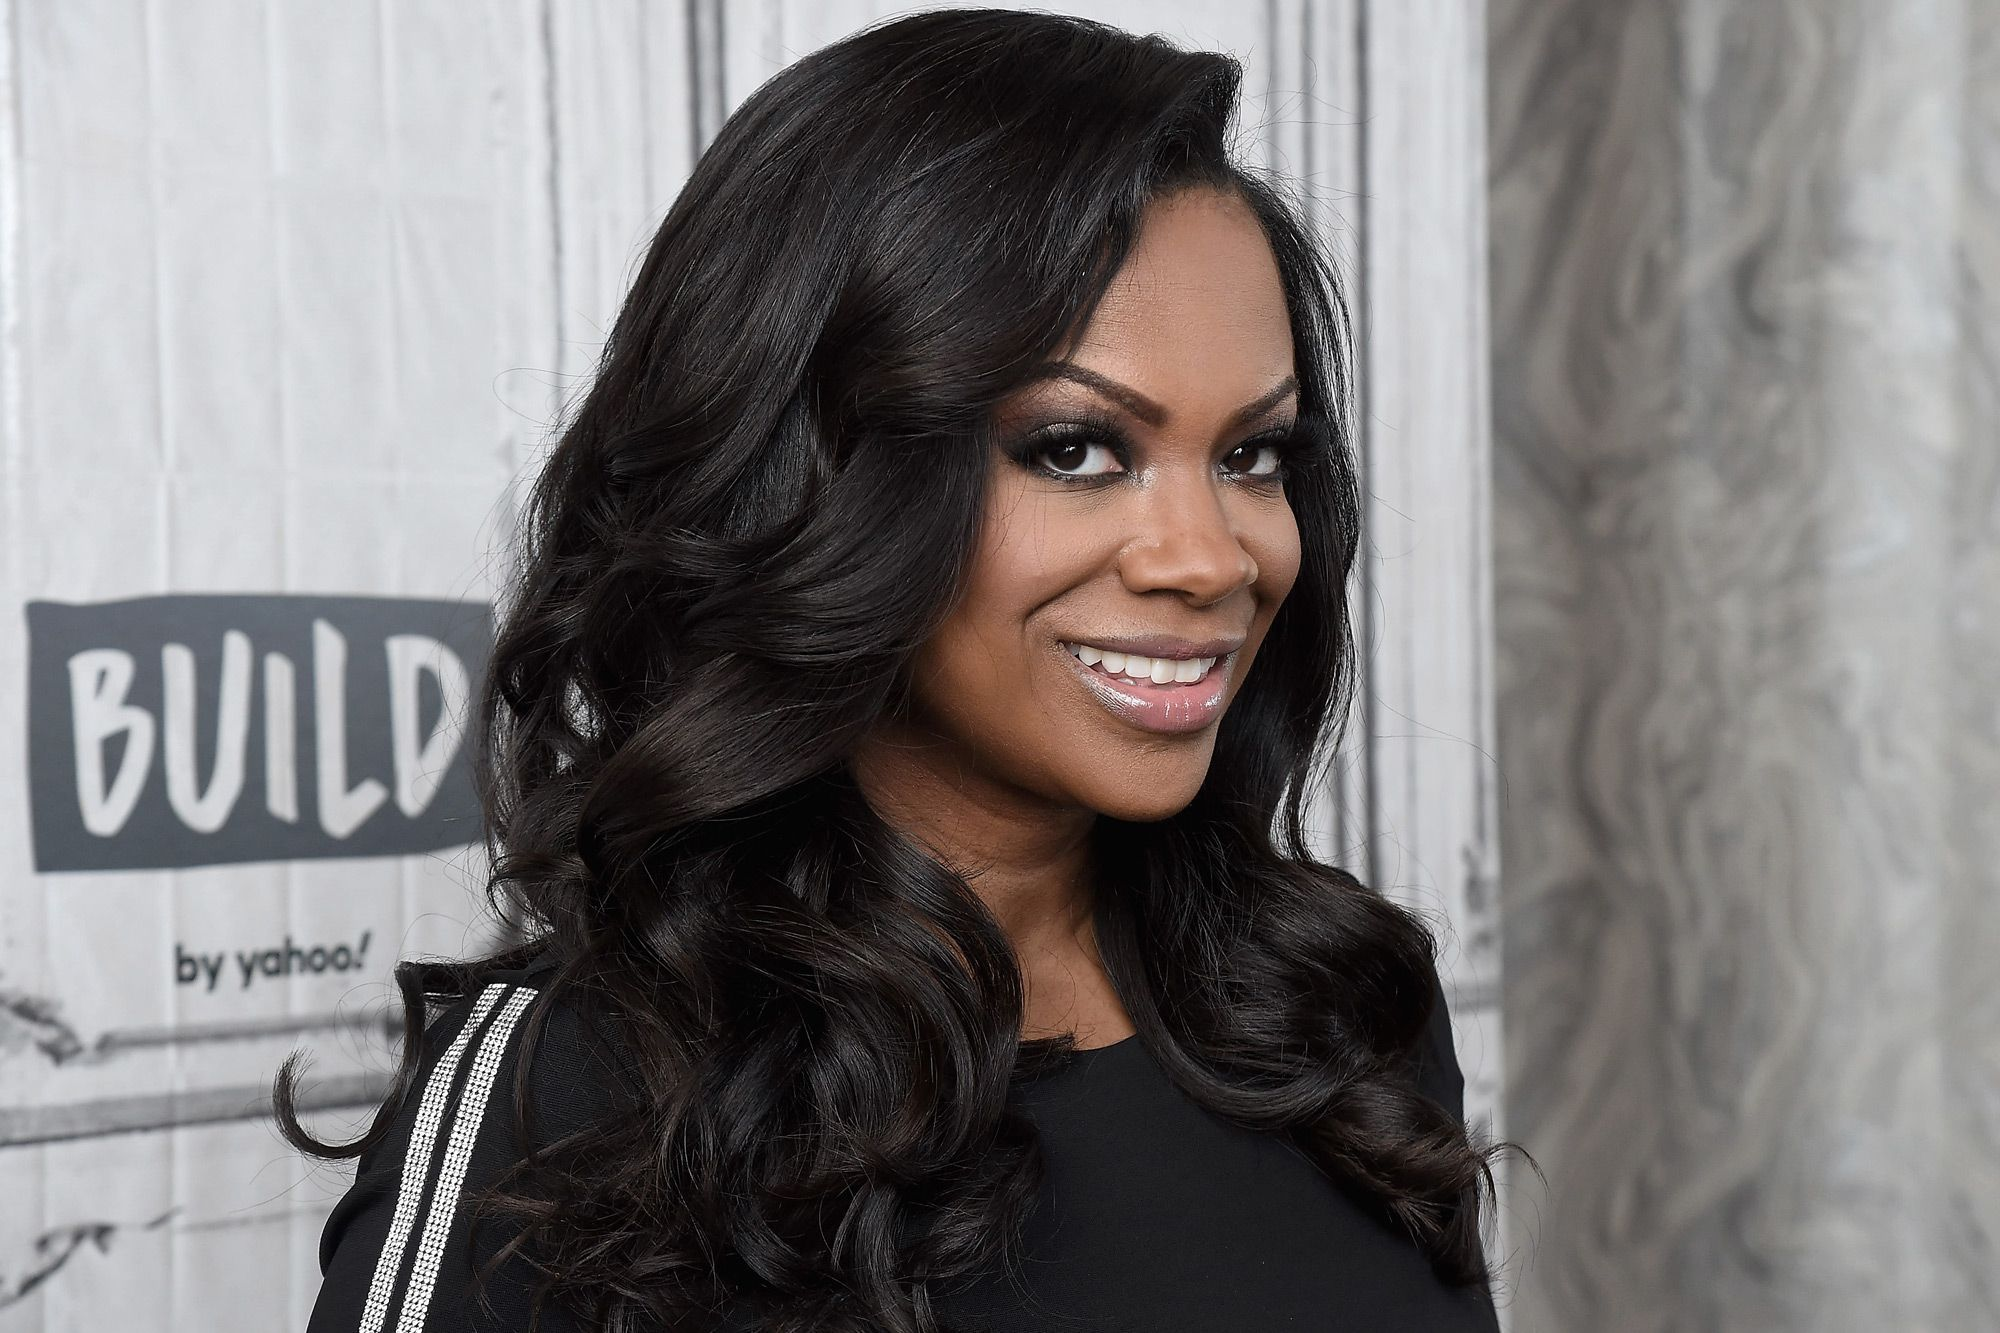 Kandi Burruss Celebrates Justice In The Case Of George Floyd